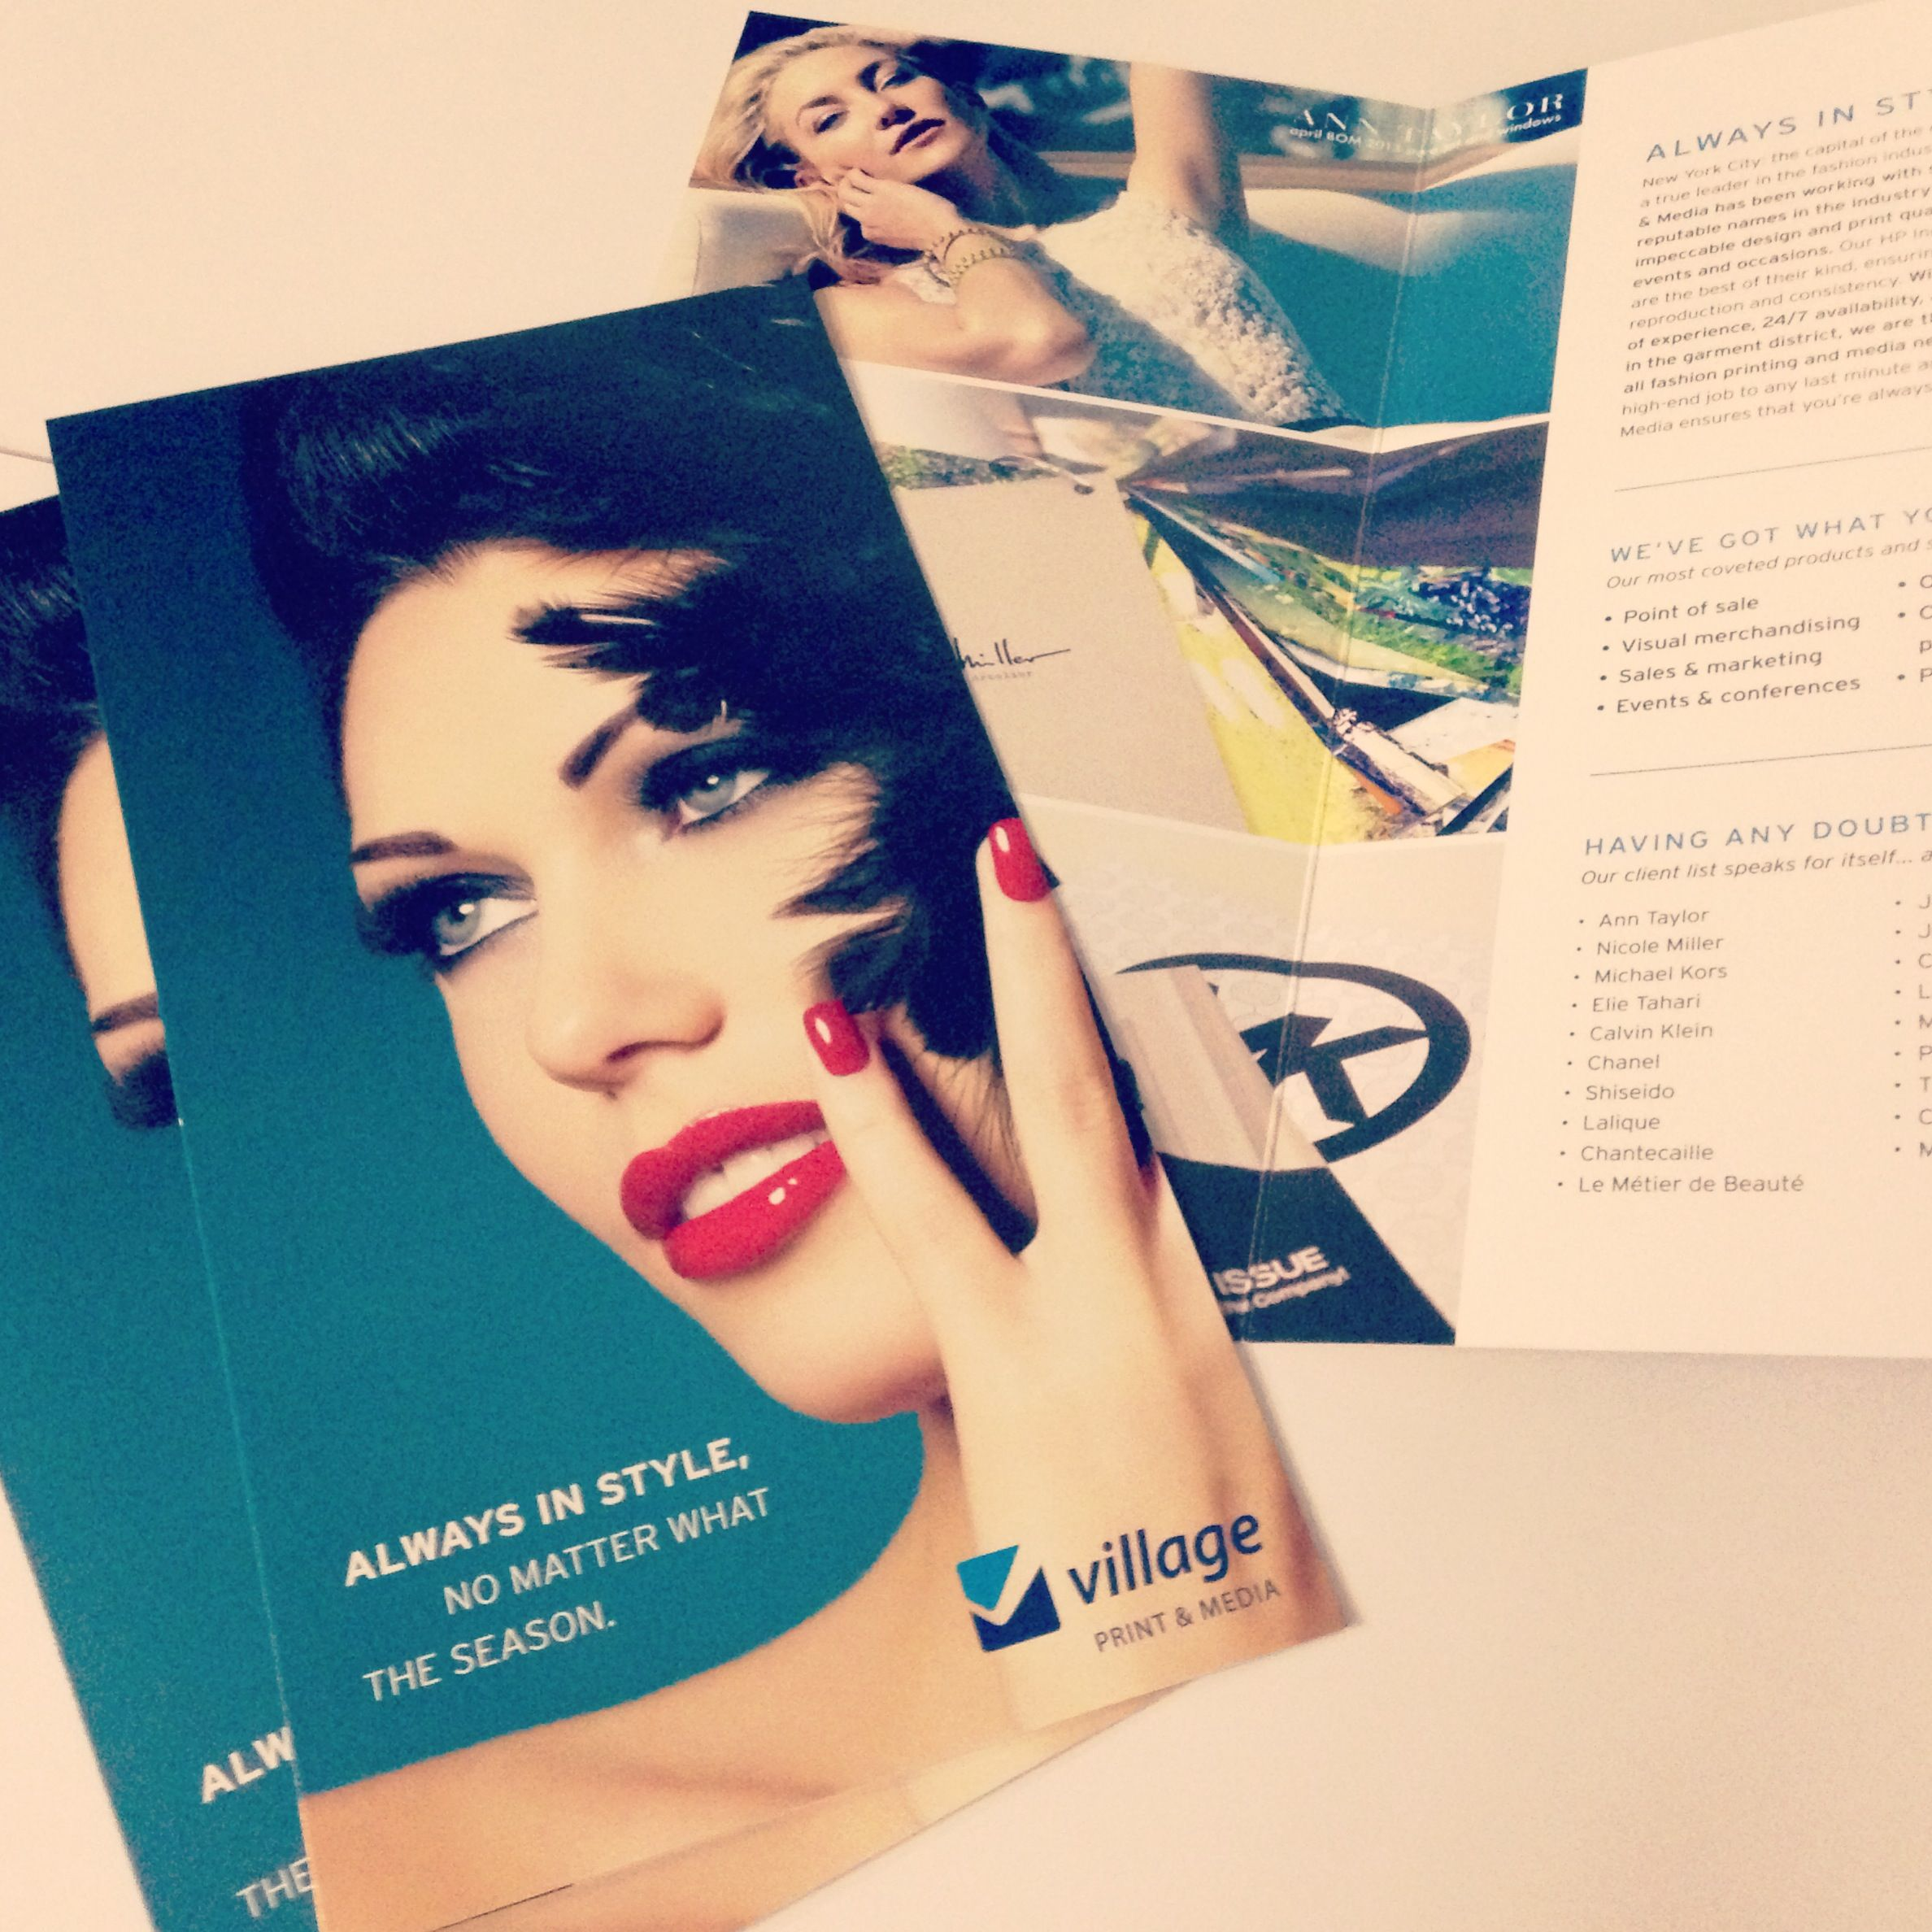 Our new creative services brochure detailing our fashion